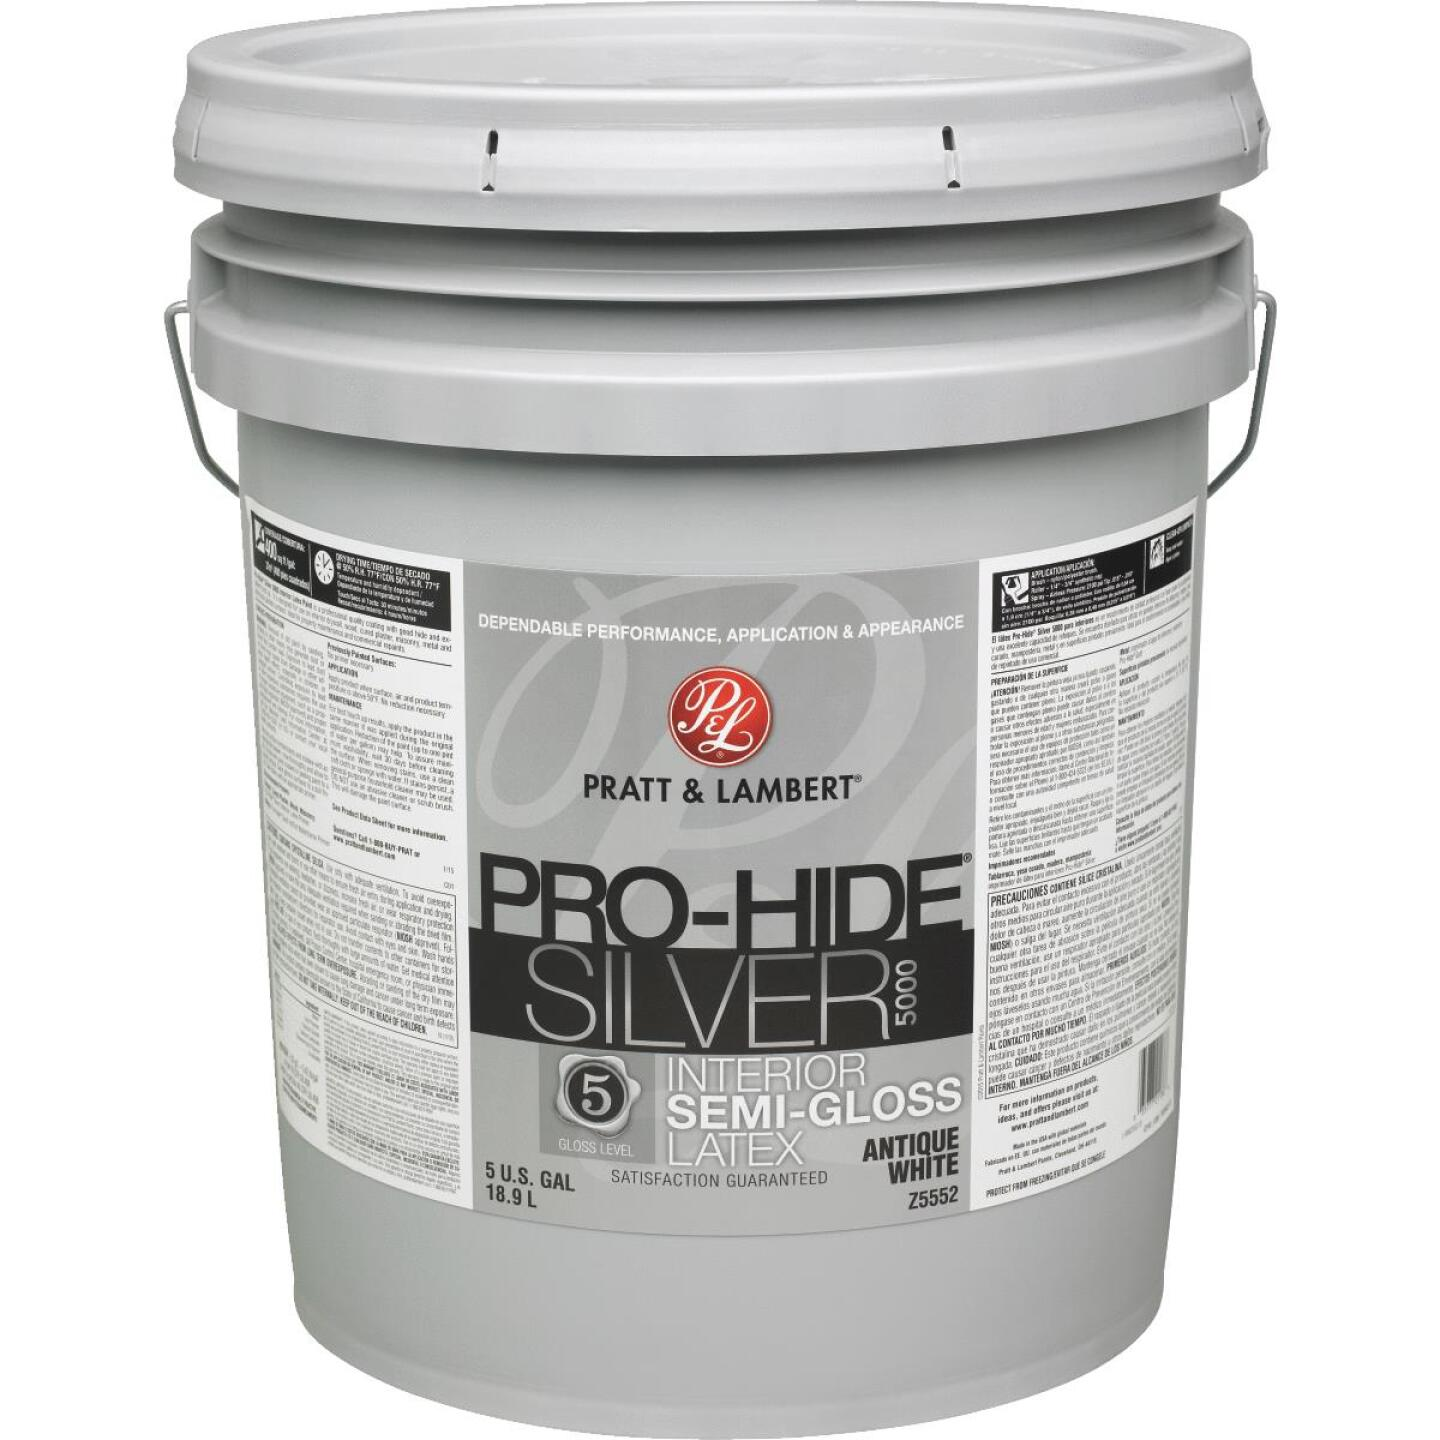 Pratt & Lambert Pro-Hide Silver 5000 Latex Semi-Gloss Interior Wall Paint, Antique White, 5 Gal. Image 1